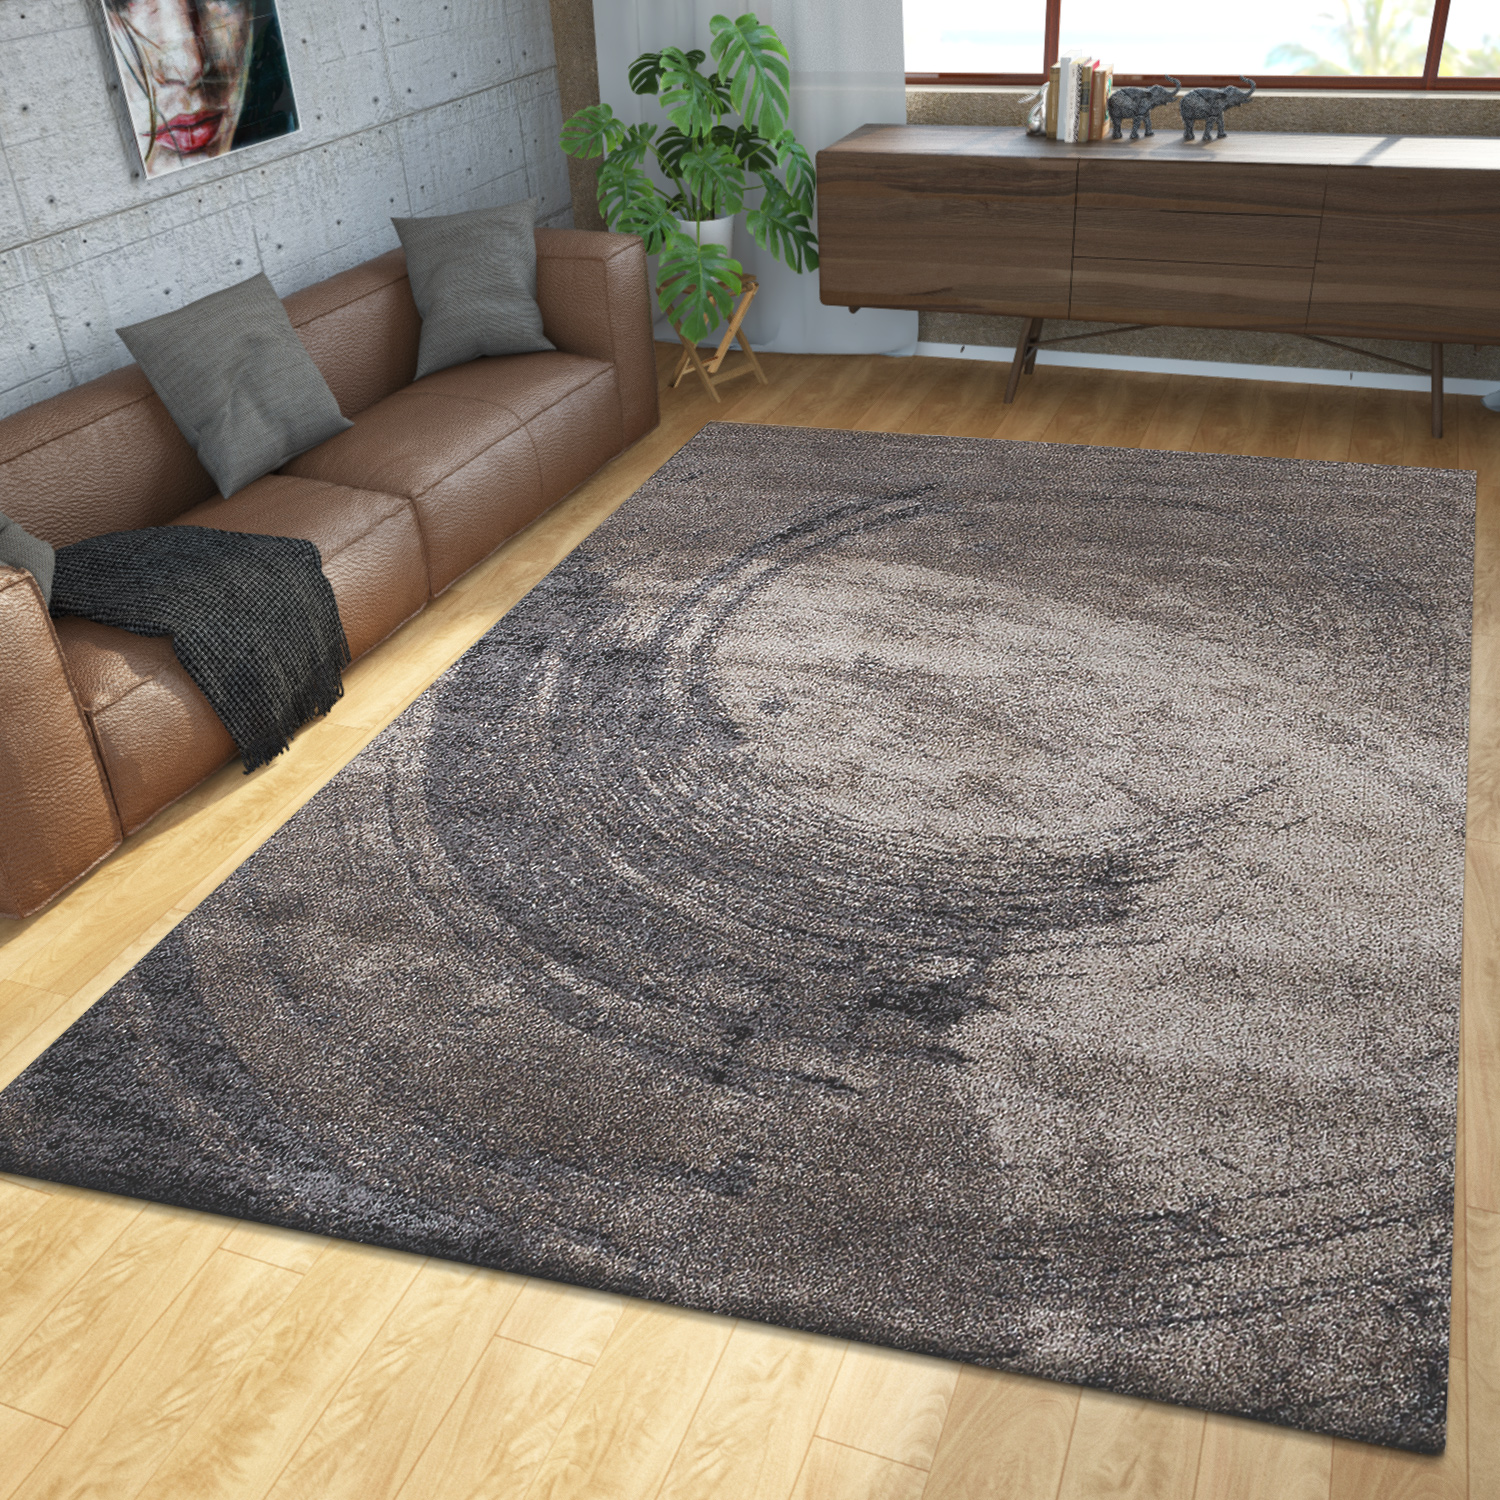 Modern Short Pile Rug With Semicircle Motif 3D Effect In Brown Beige SALE